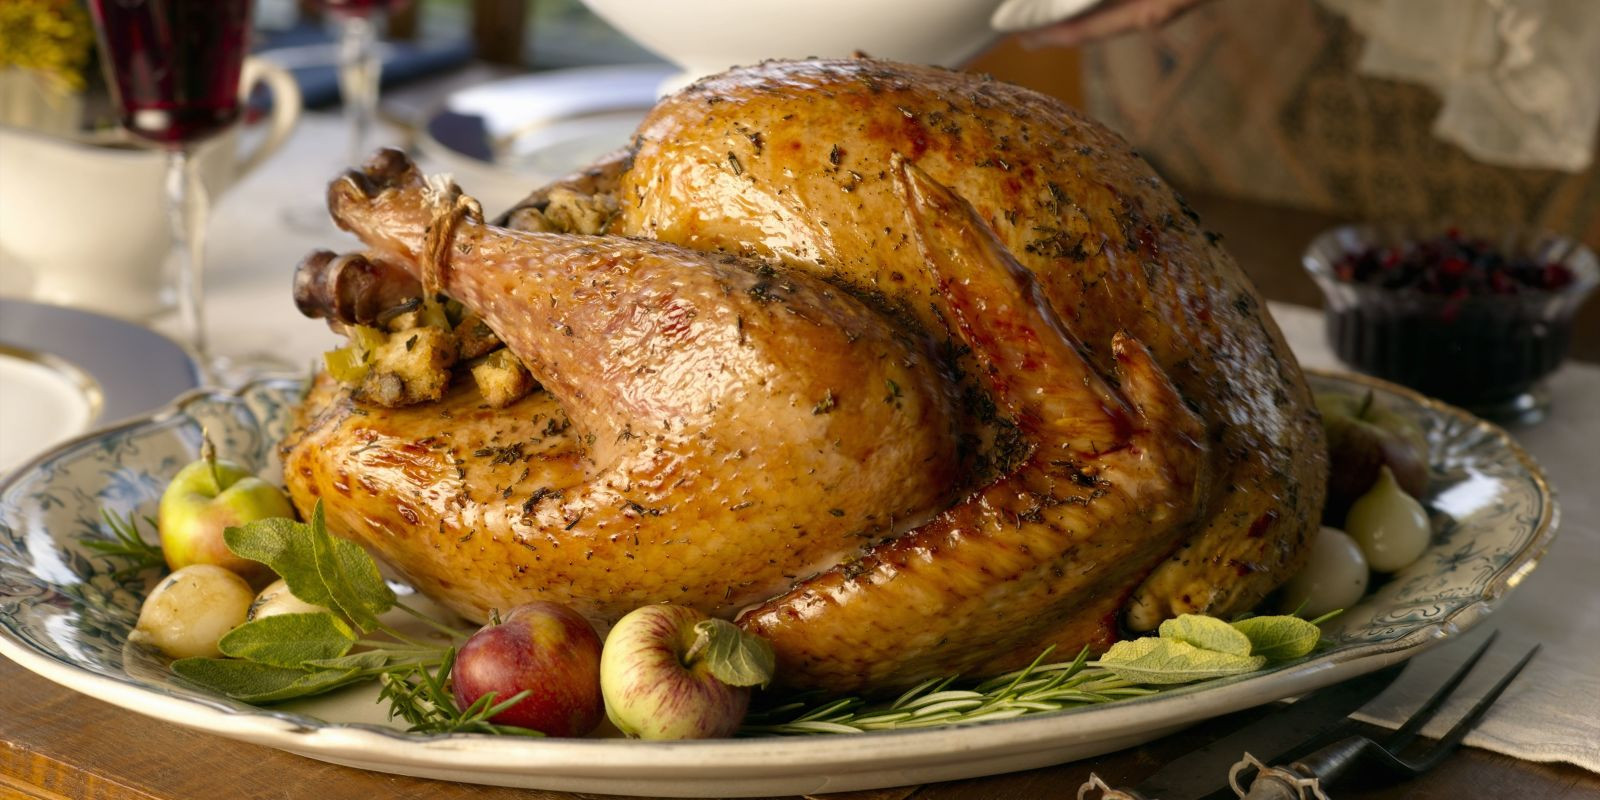 Average Size Turkey For Thanksgiving  How Much Turkey Per Person Thanksgiving Chart – How Big of